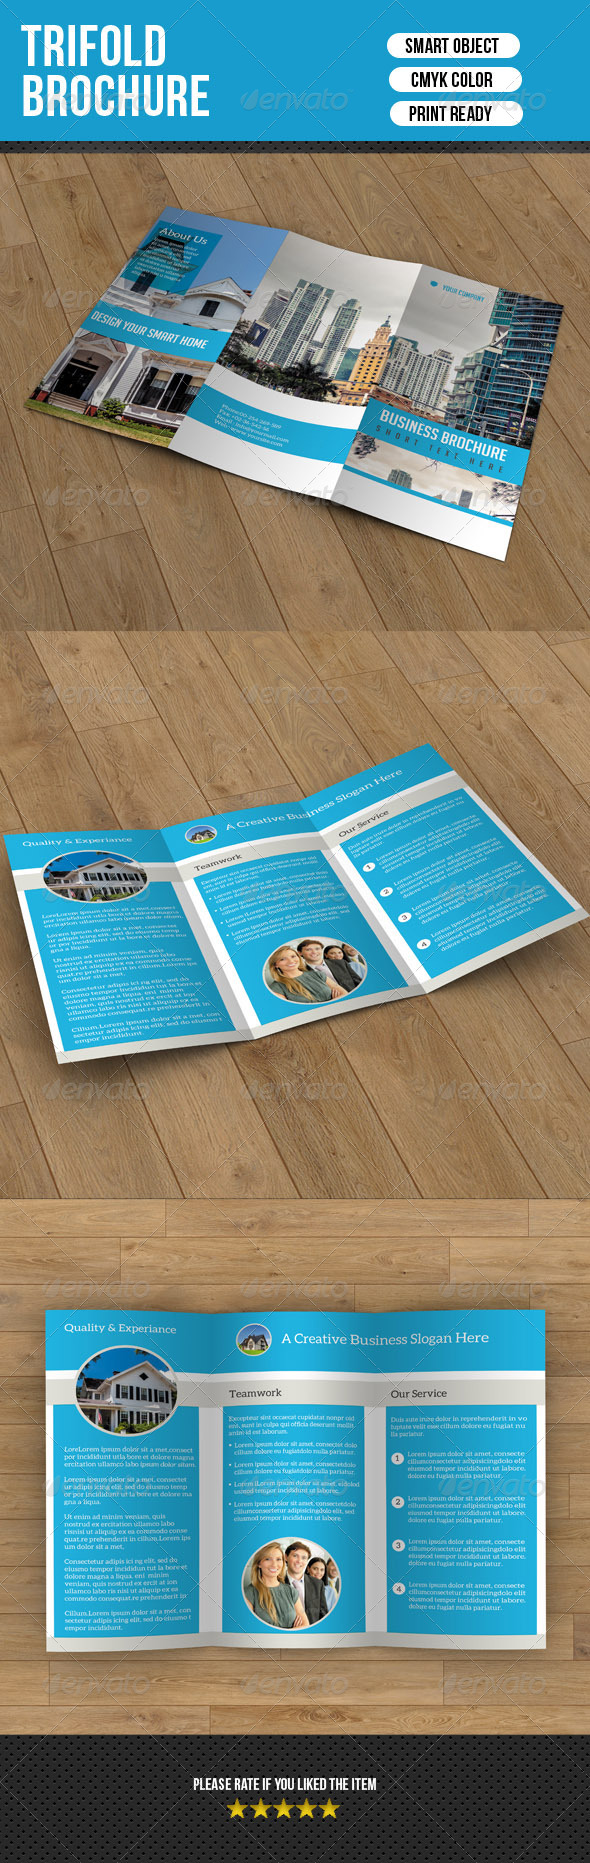 GraphicRiver Trifold Brochure for Business 7125495